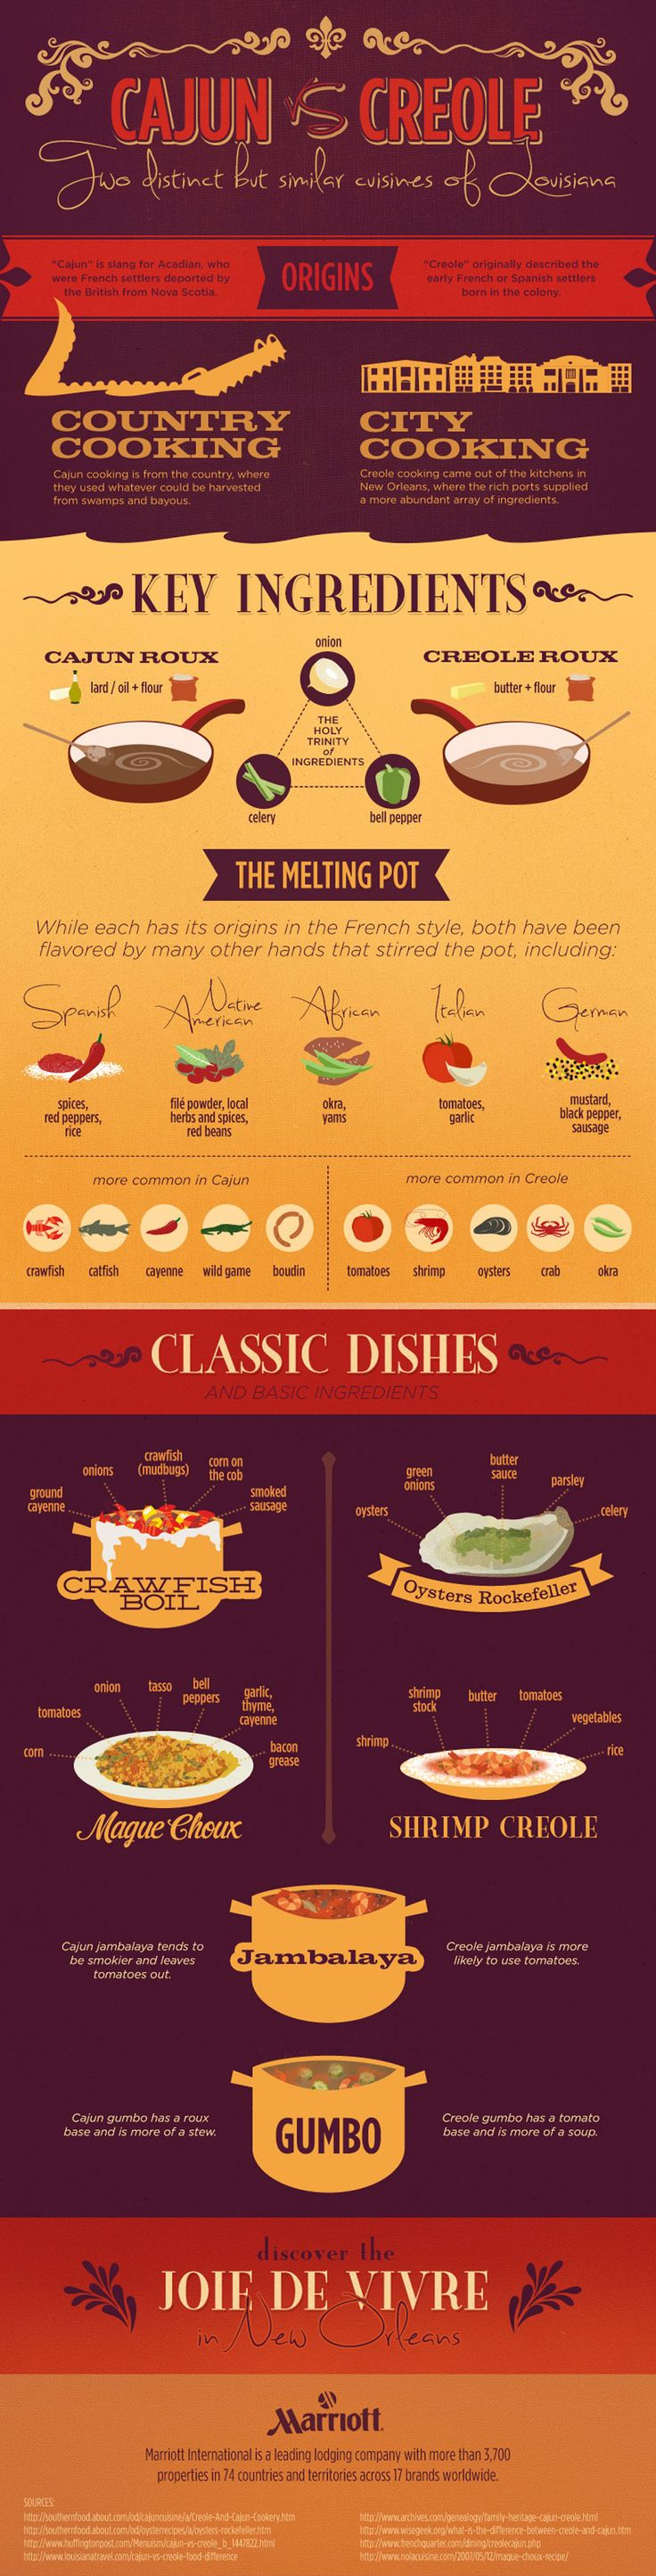 Cajun and Creole cuisines represent two distinct cultures, and while over the years they have continued to blend, there bold distinction remains both in the flavours, and the ancestries that brought these delicious flavours to our plates. Could it be as simple as creole cuisine using tomatoes, while proper Cajun food does not?